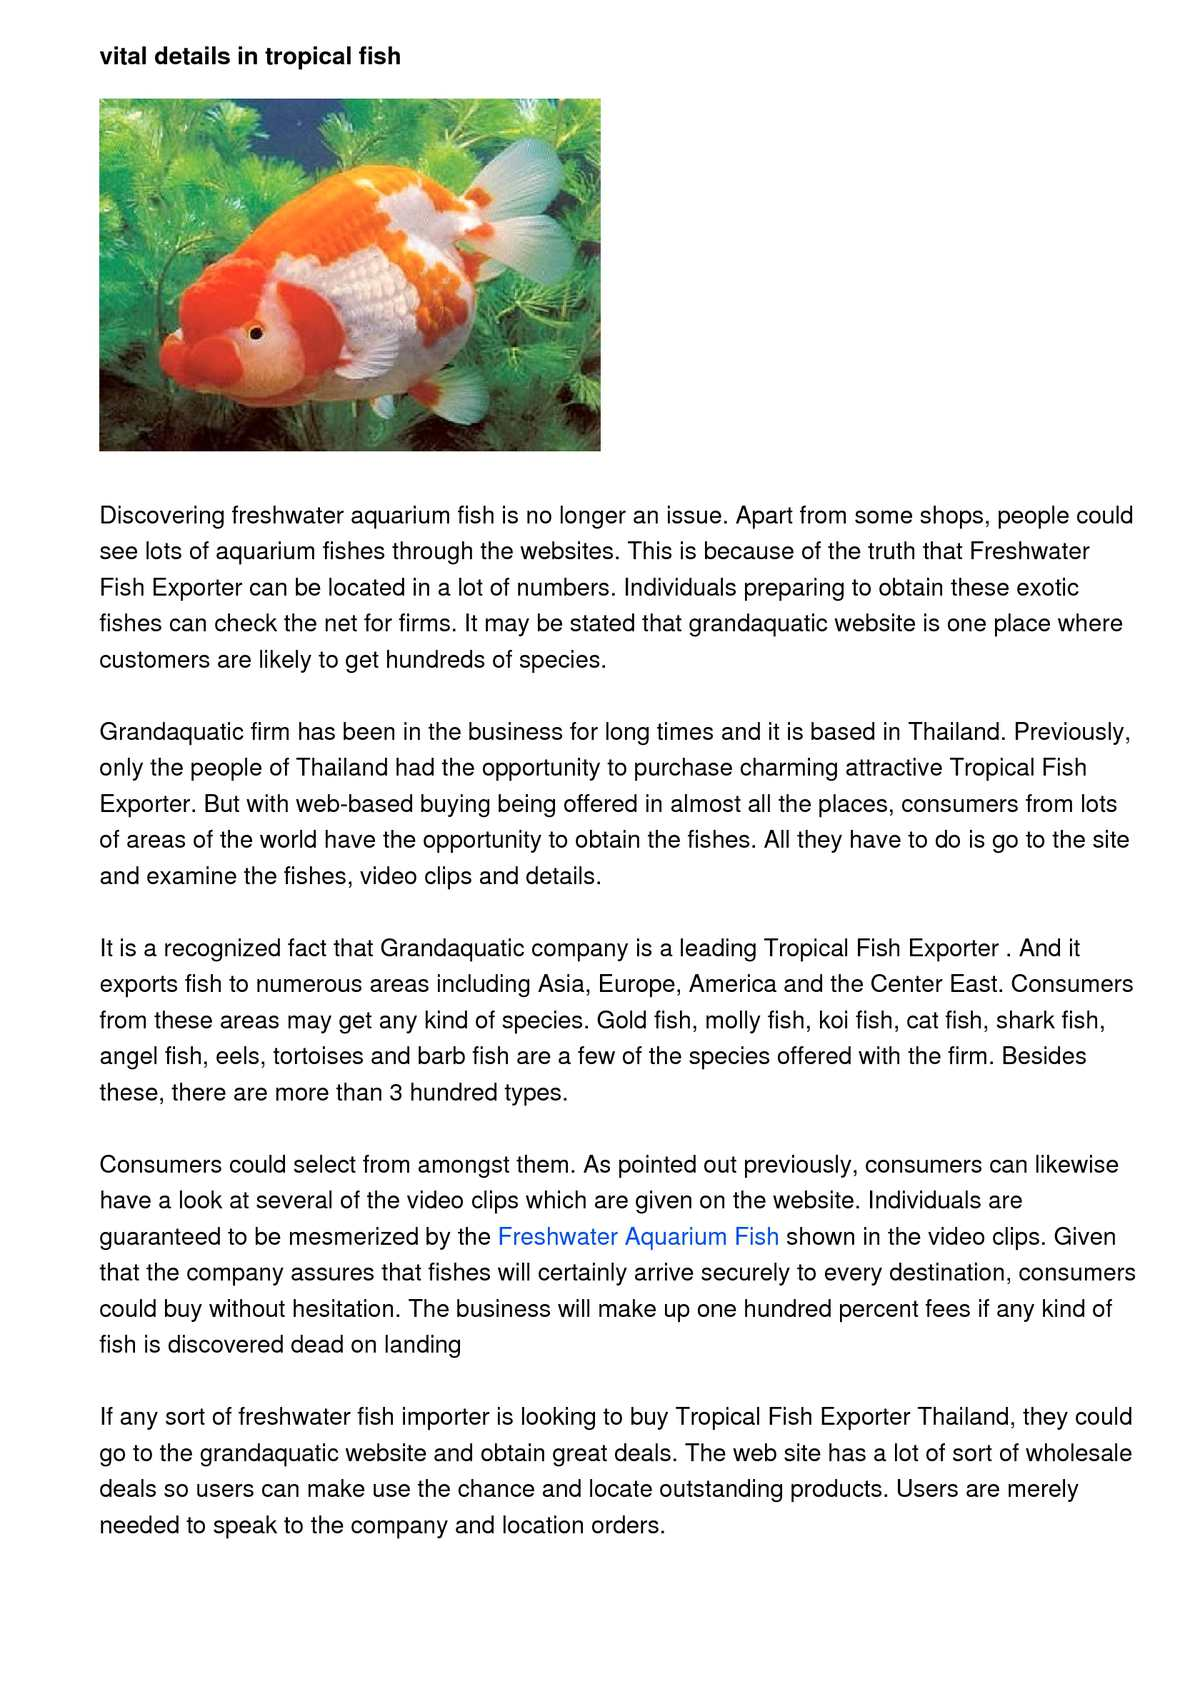 Freshwater aquarium fish from asia - Freshwater Aquarium Fish From Asia